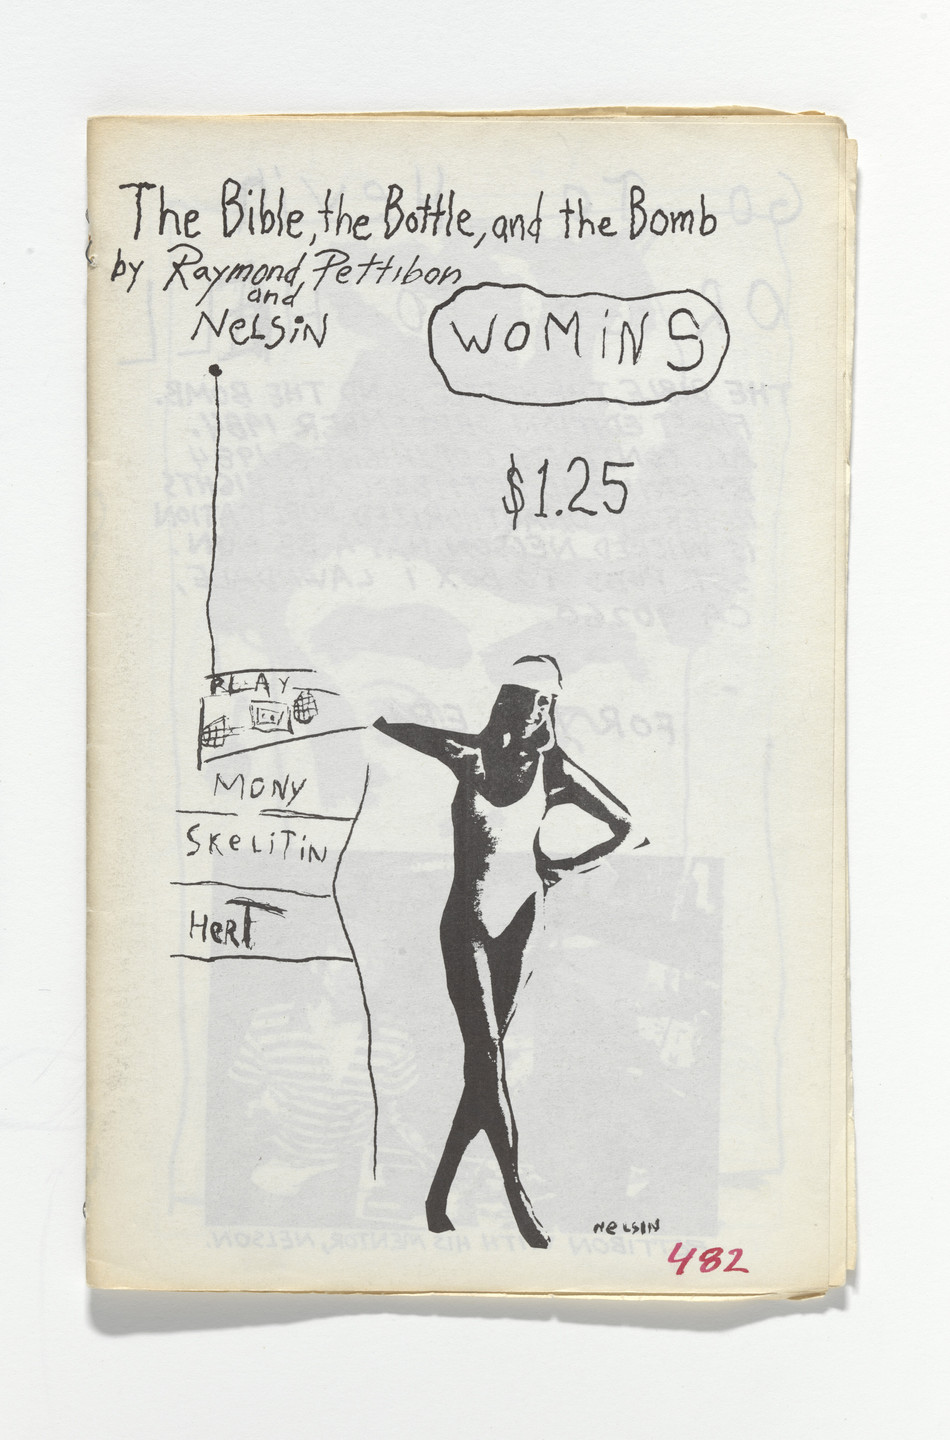 Raymond Pettibon, Nelson Tarpenny. The Bible, The Bottle, and The Bomb. 1984